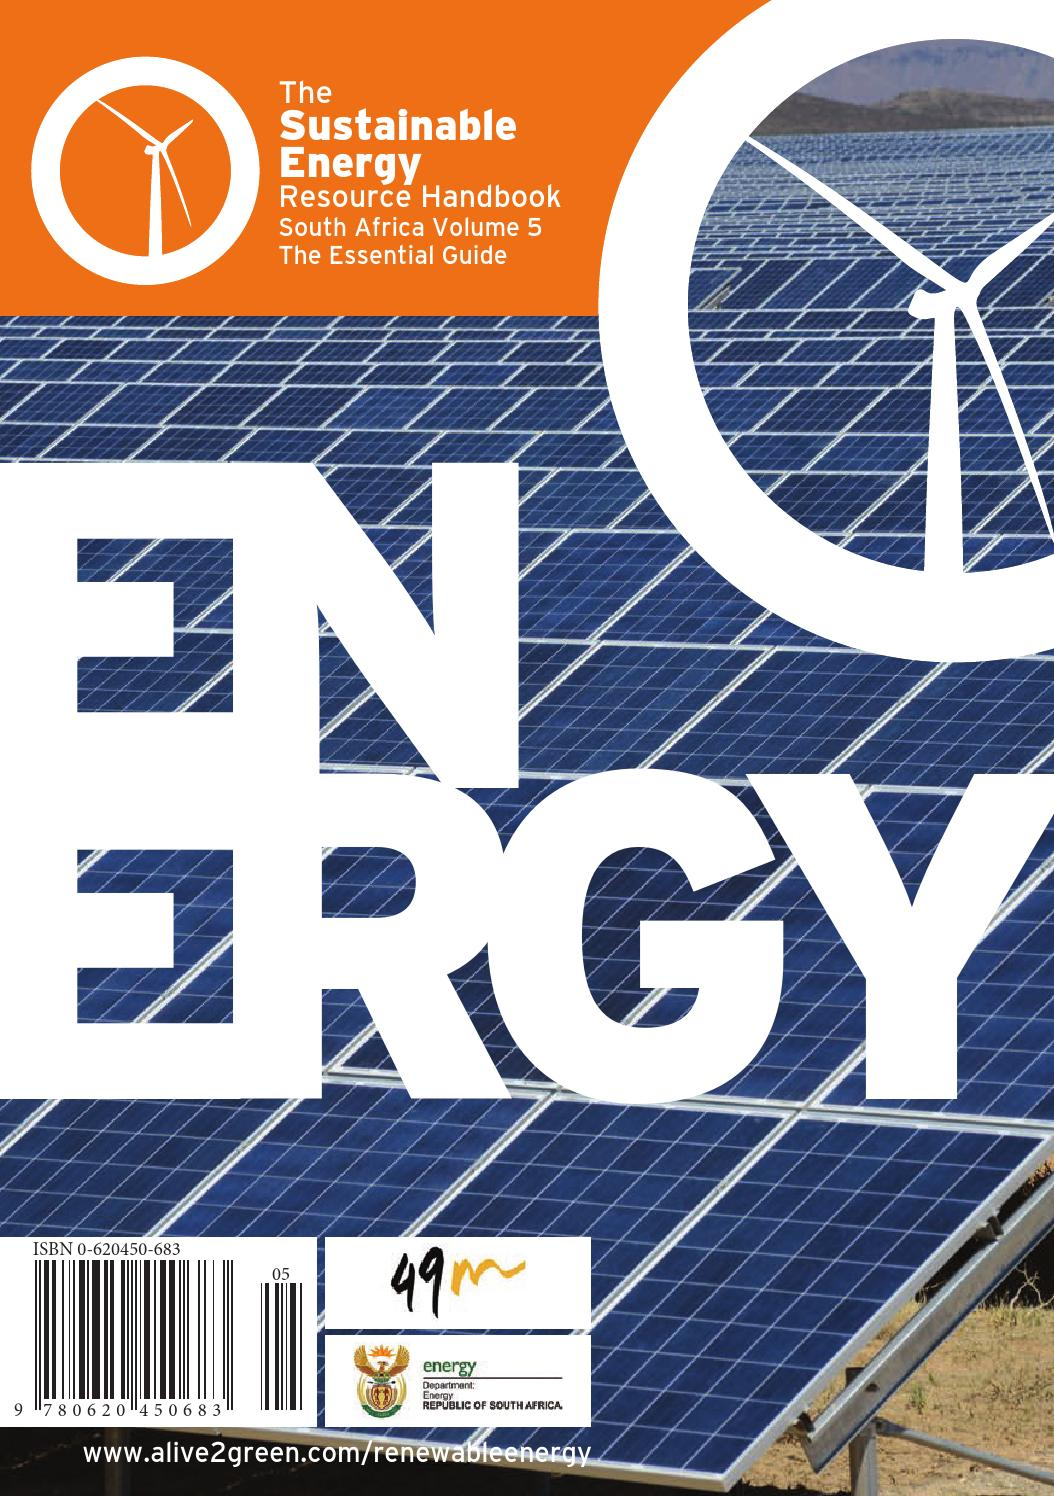 The Sustainable Energy Resource Handbook South Africa Volume 5 By Checking Power Mosfet With Simple Tester Savel Brain Dump In English Alive2green Issuu